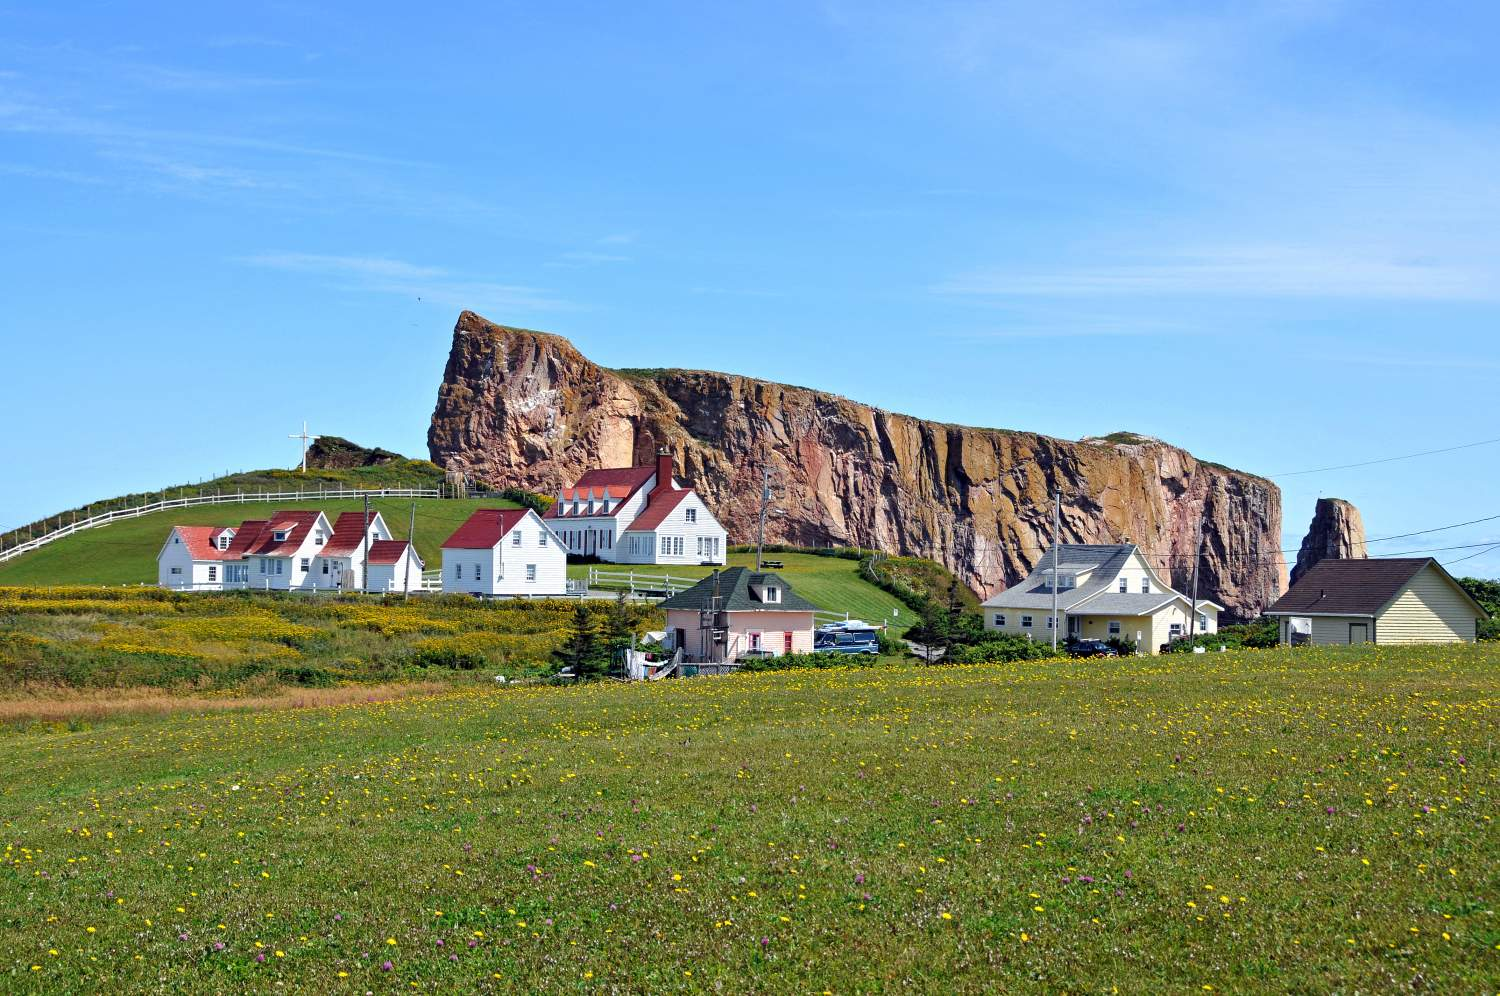 Perce city, Gaspesie, Canada